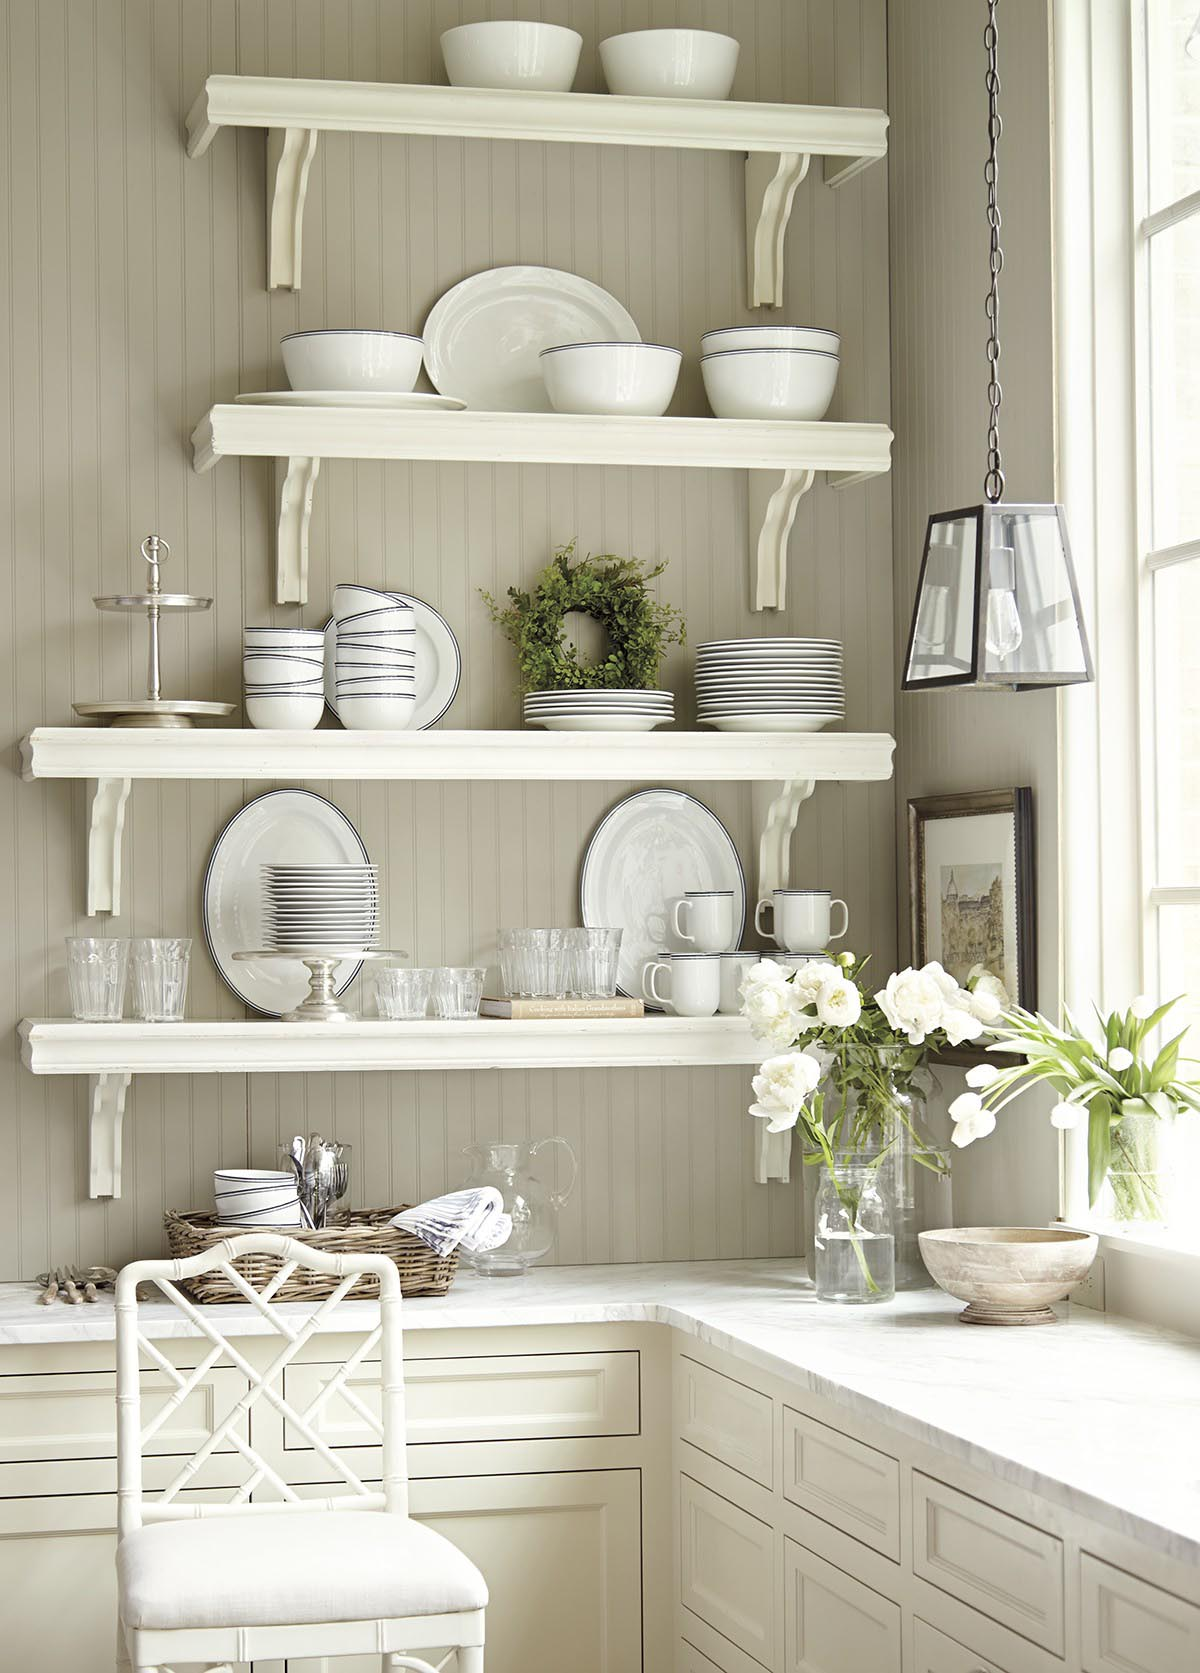 Decorative Wall Shelves For The Kitchen : Decorative kitchen wall shelves best decor things